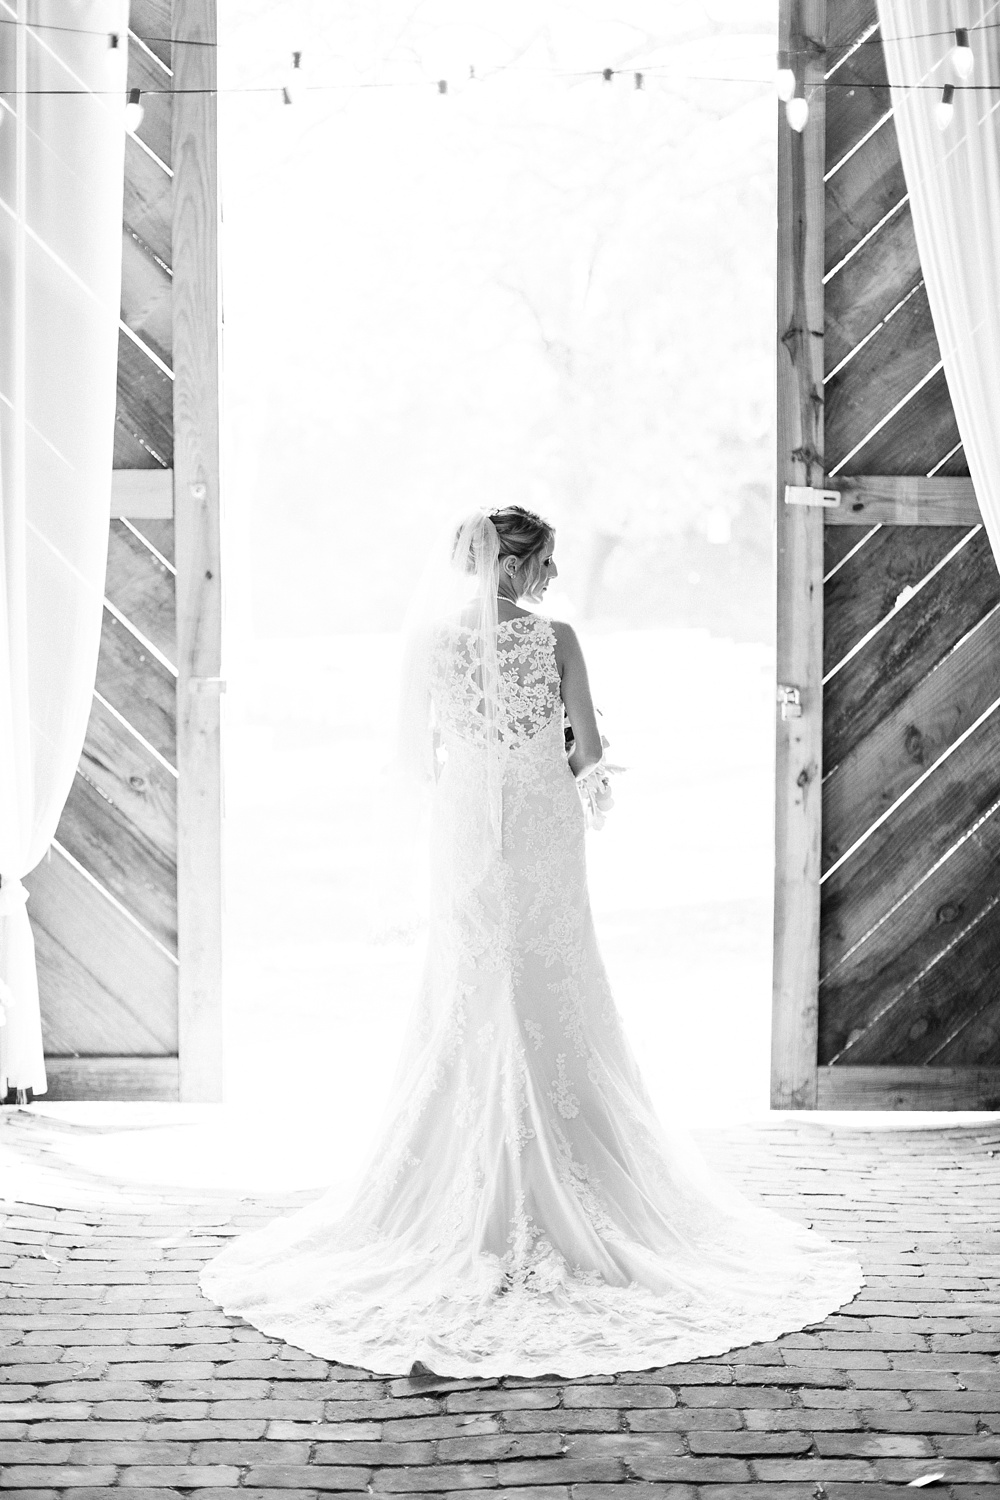 bridal portrait at goldsboro bridge battlefield by rachael bowman photography